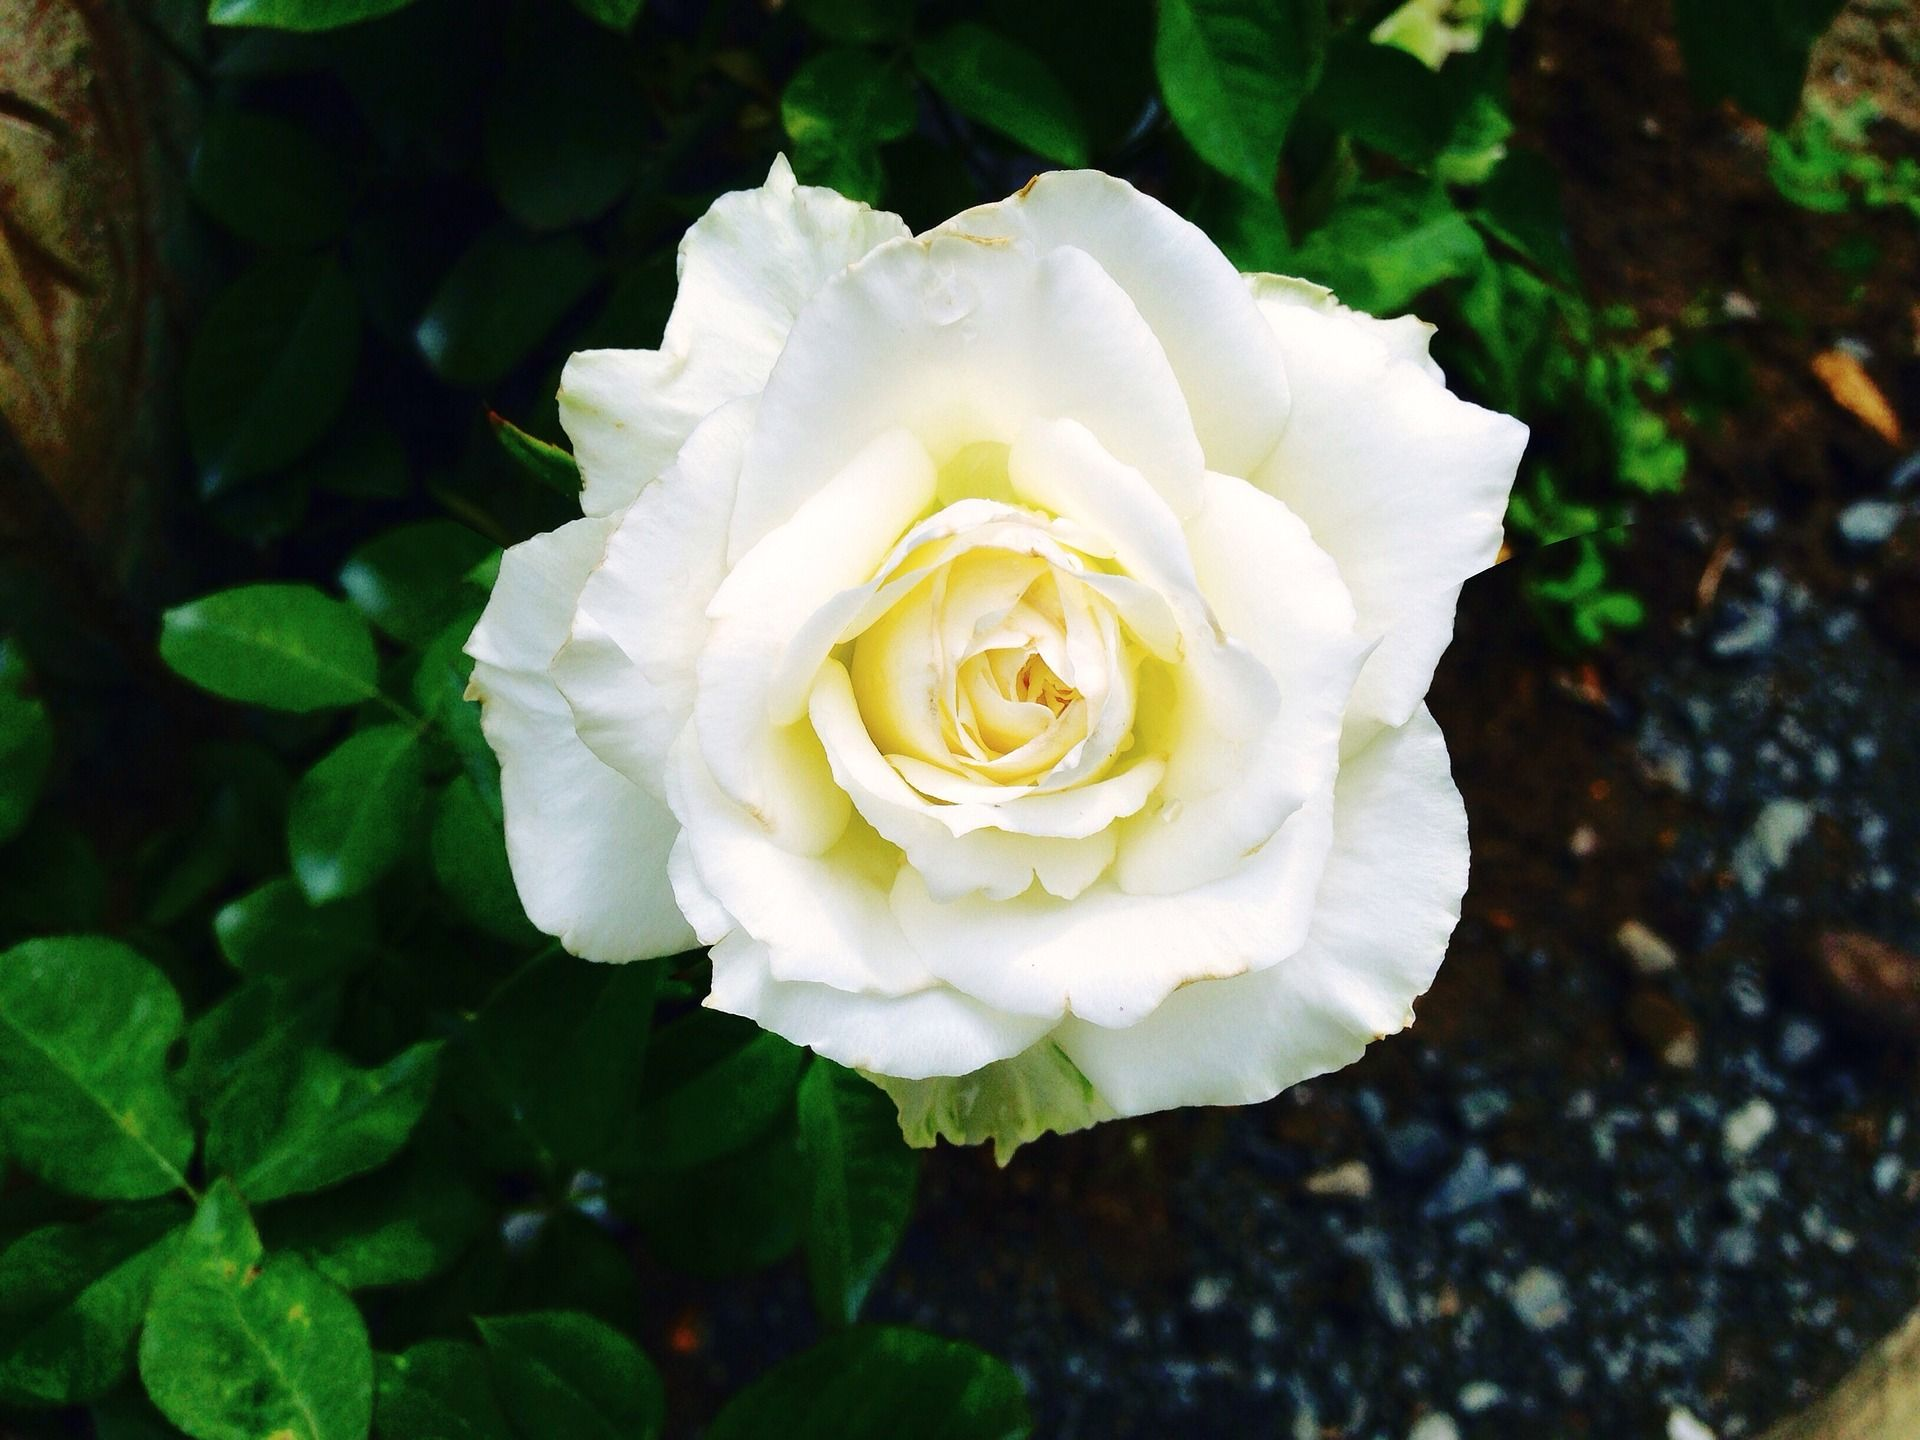 White Rose Meaning Innocence And Secrecy The White Rose Tells The